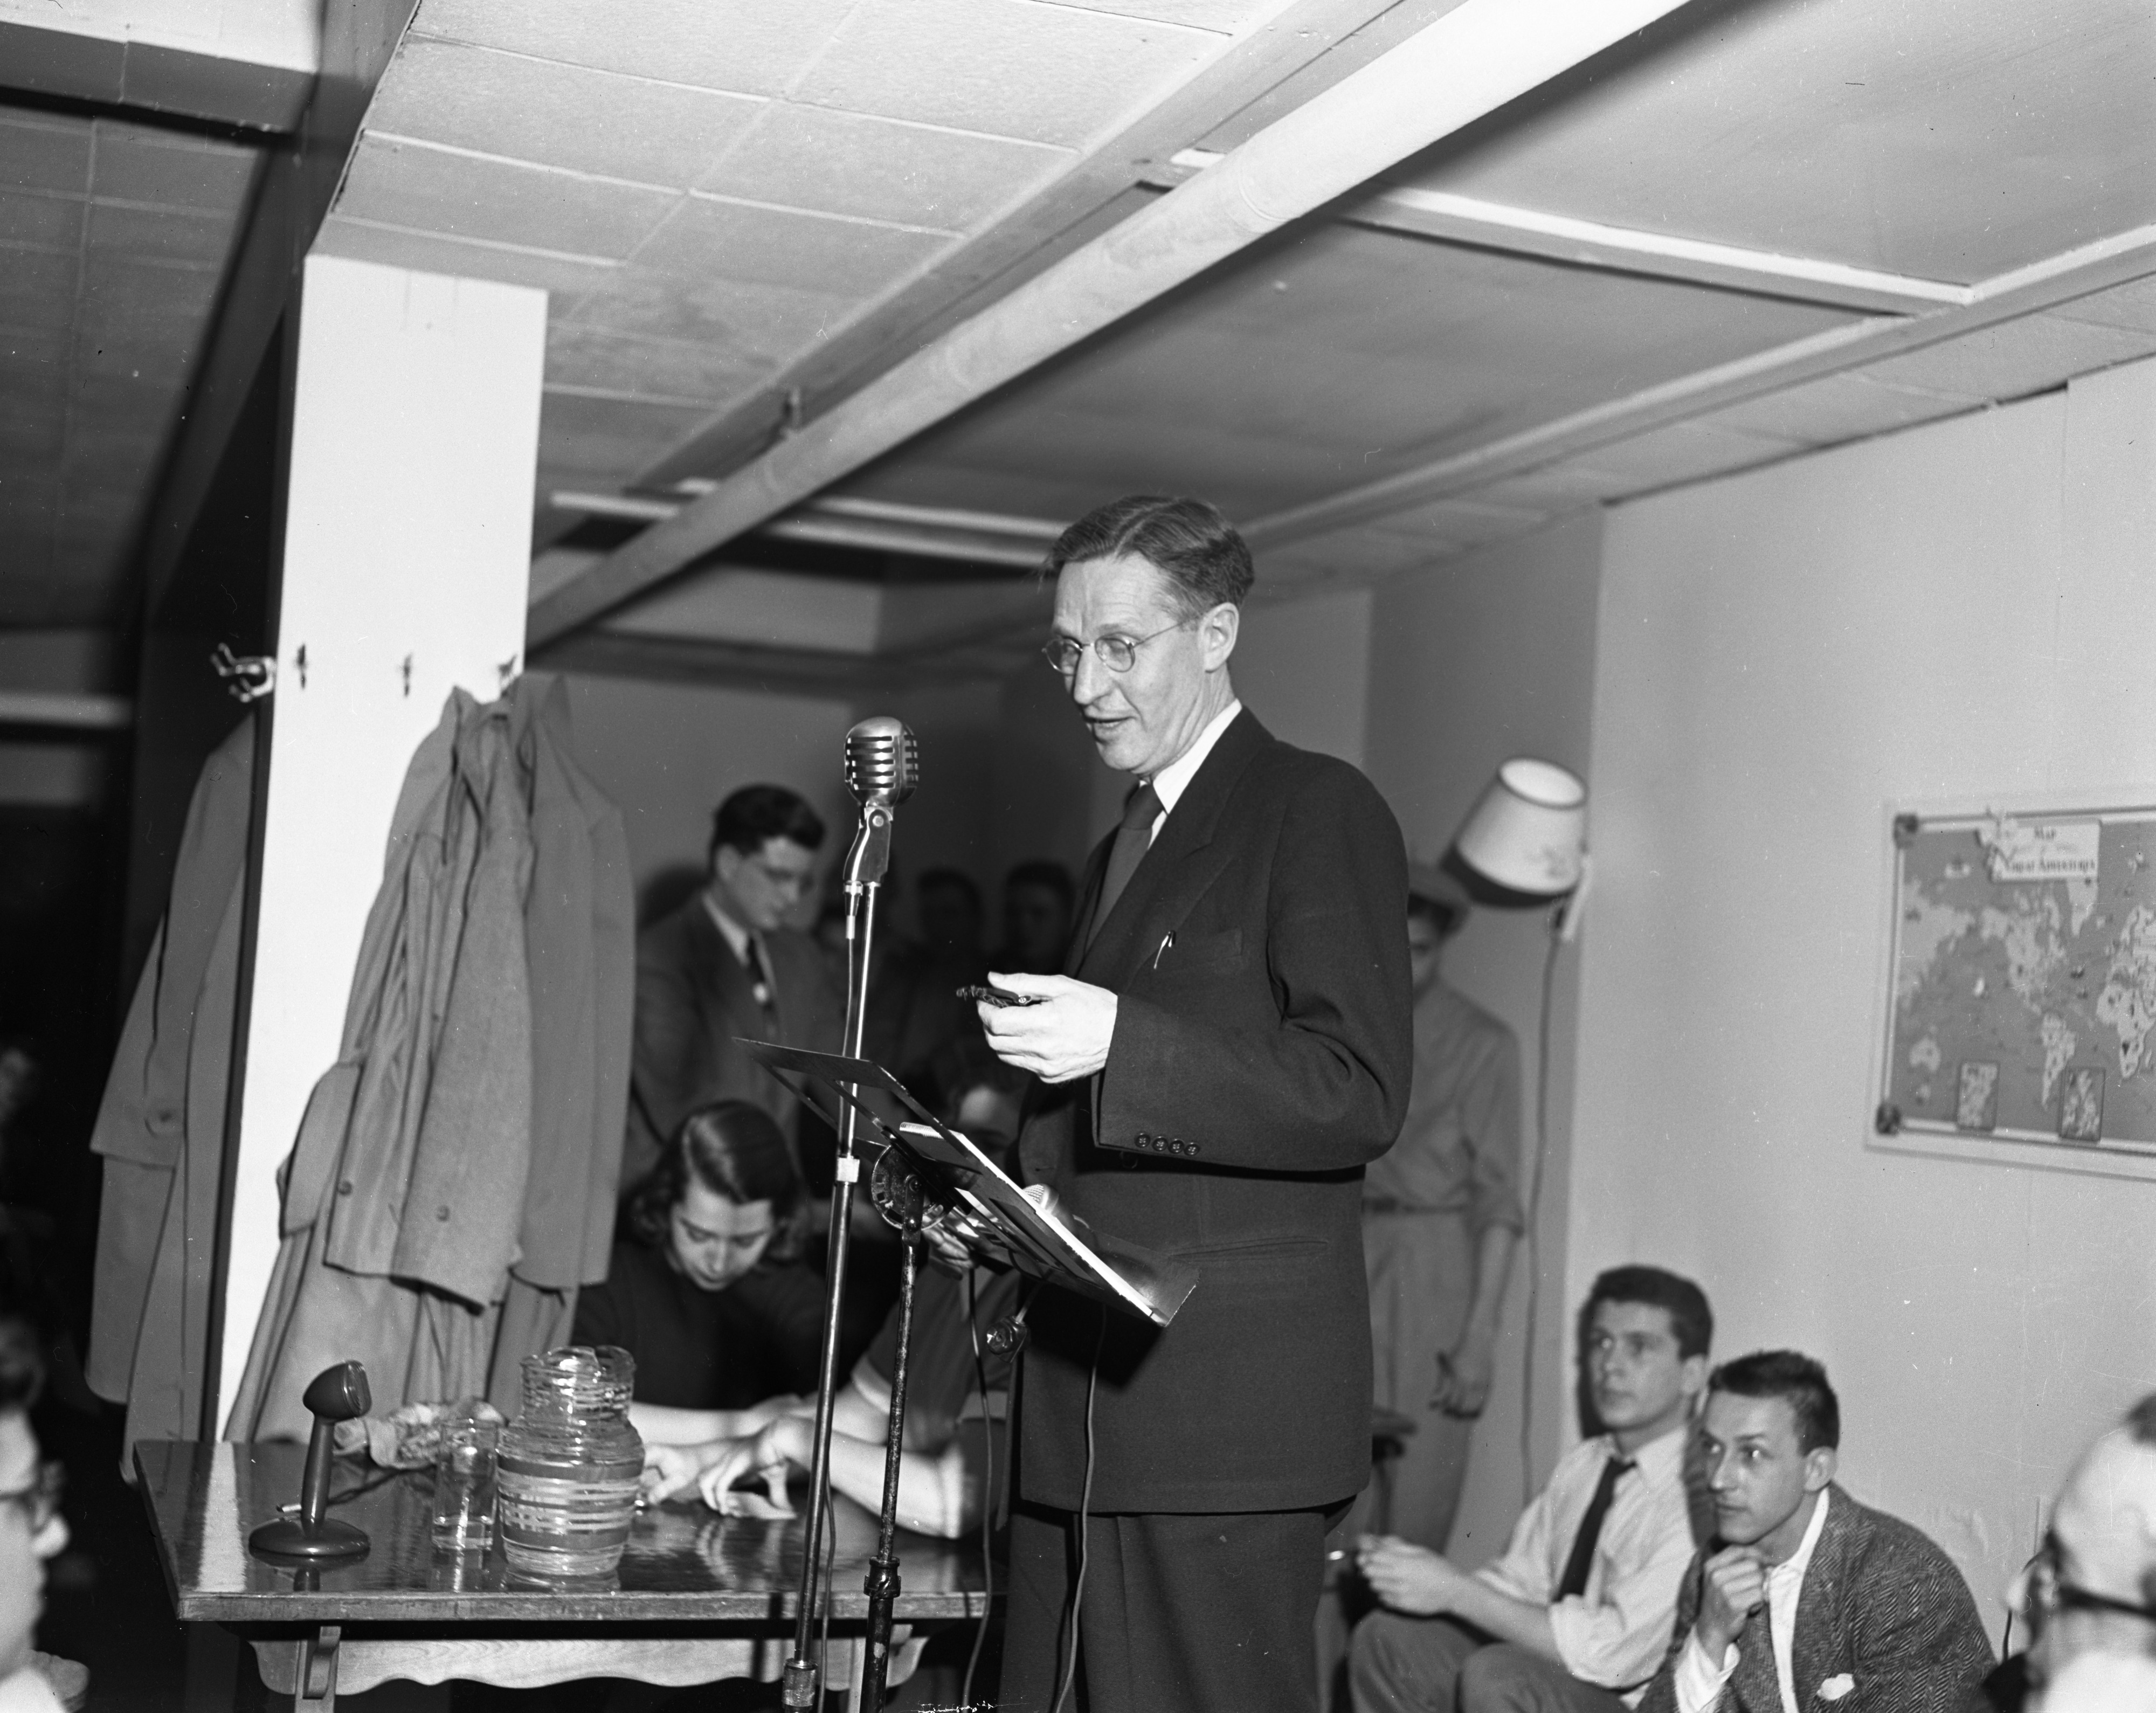 Dr. R. J. Phillips at debate on Communism versus Capitalism, April 27, 1950 image